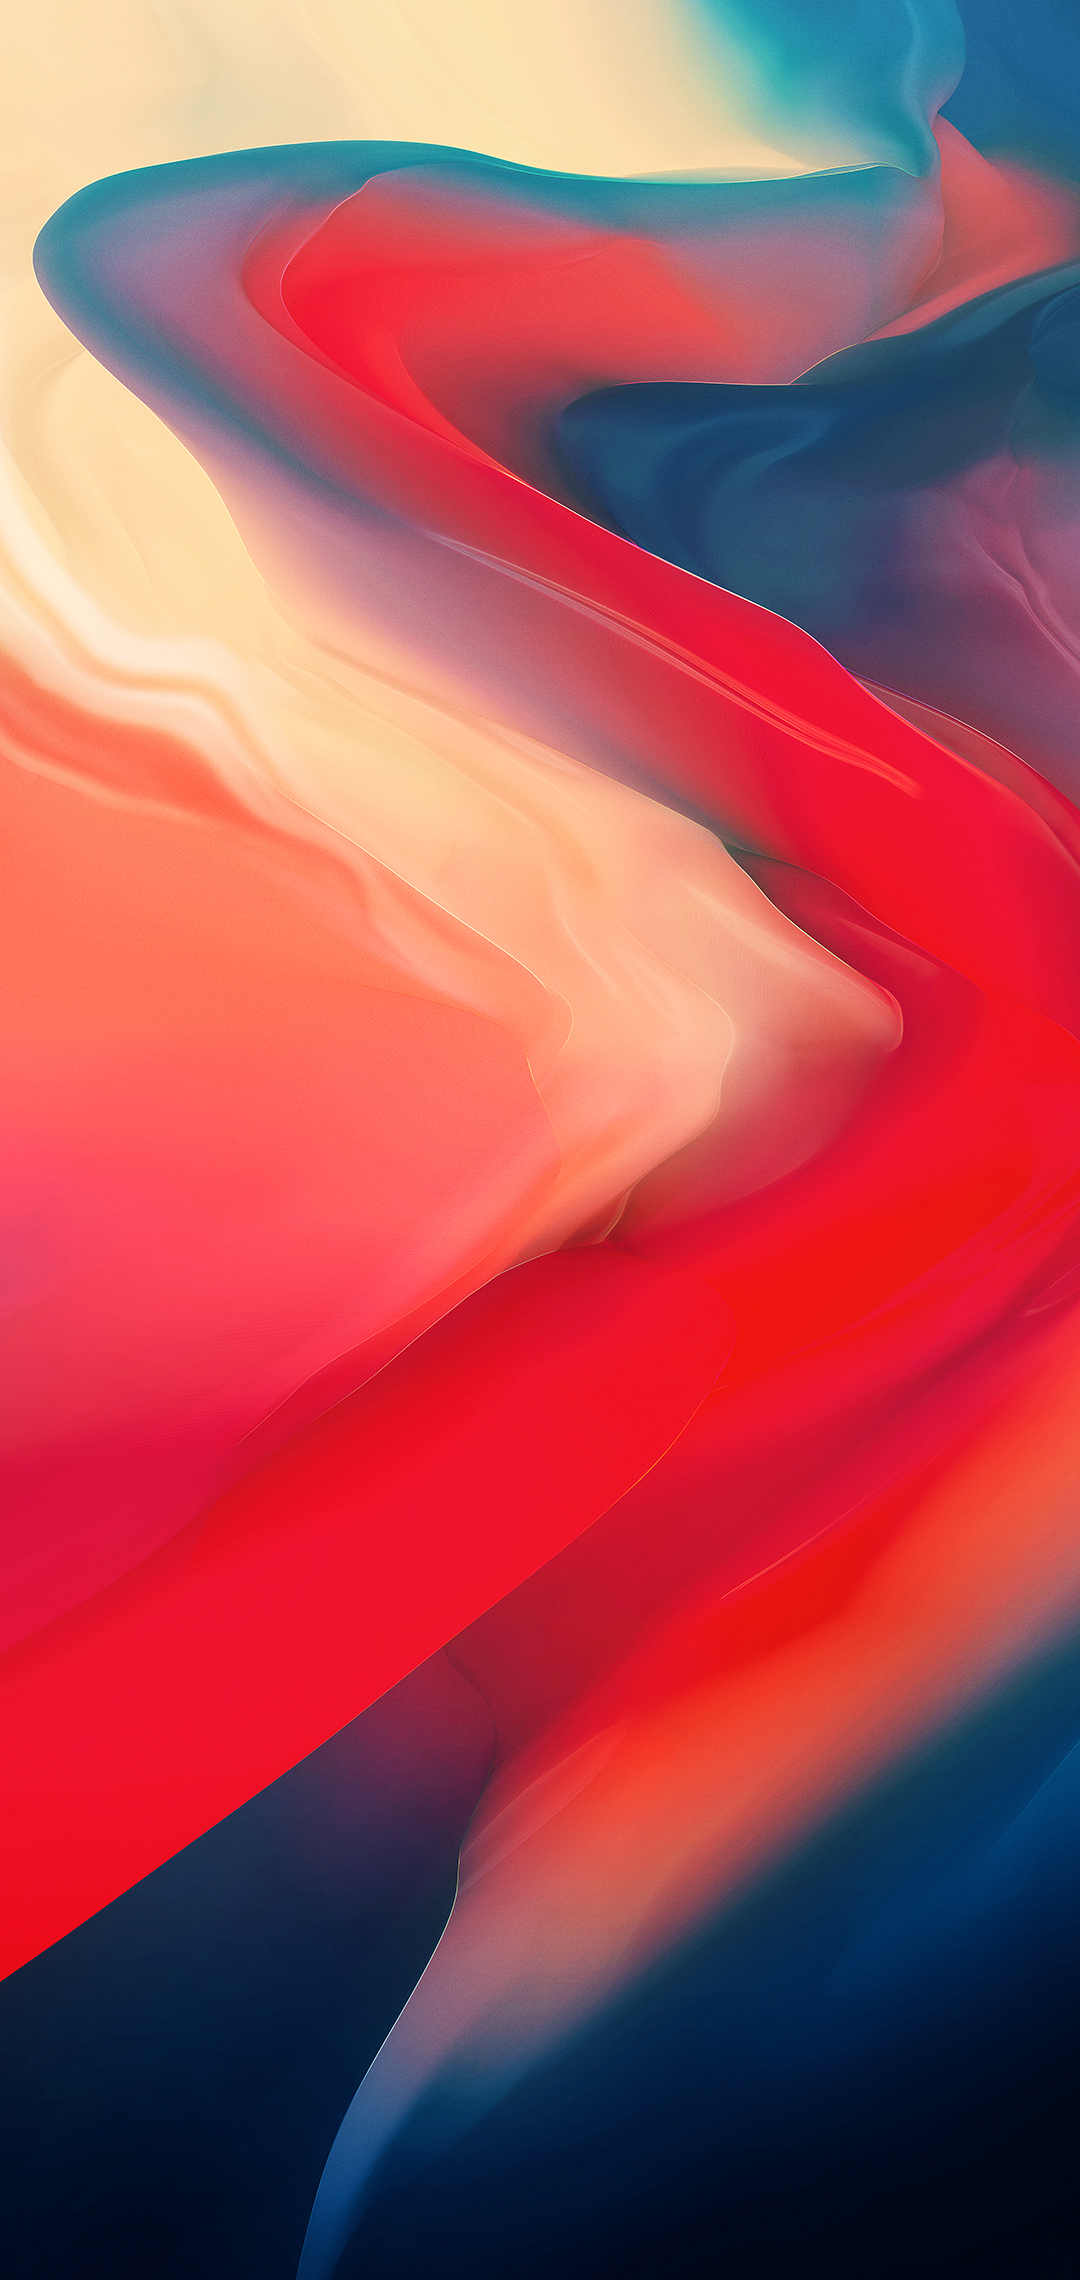 Oneplus 6 Wallpapers Hampus Olsson Portfolio Of 2018